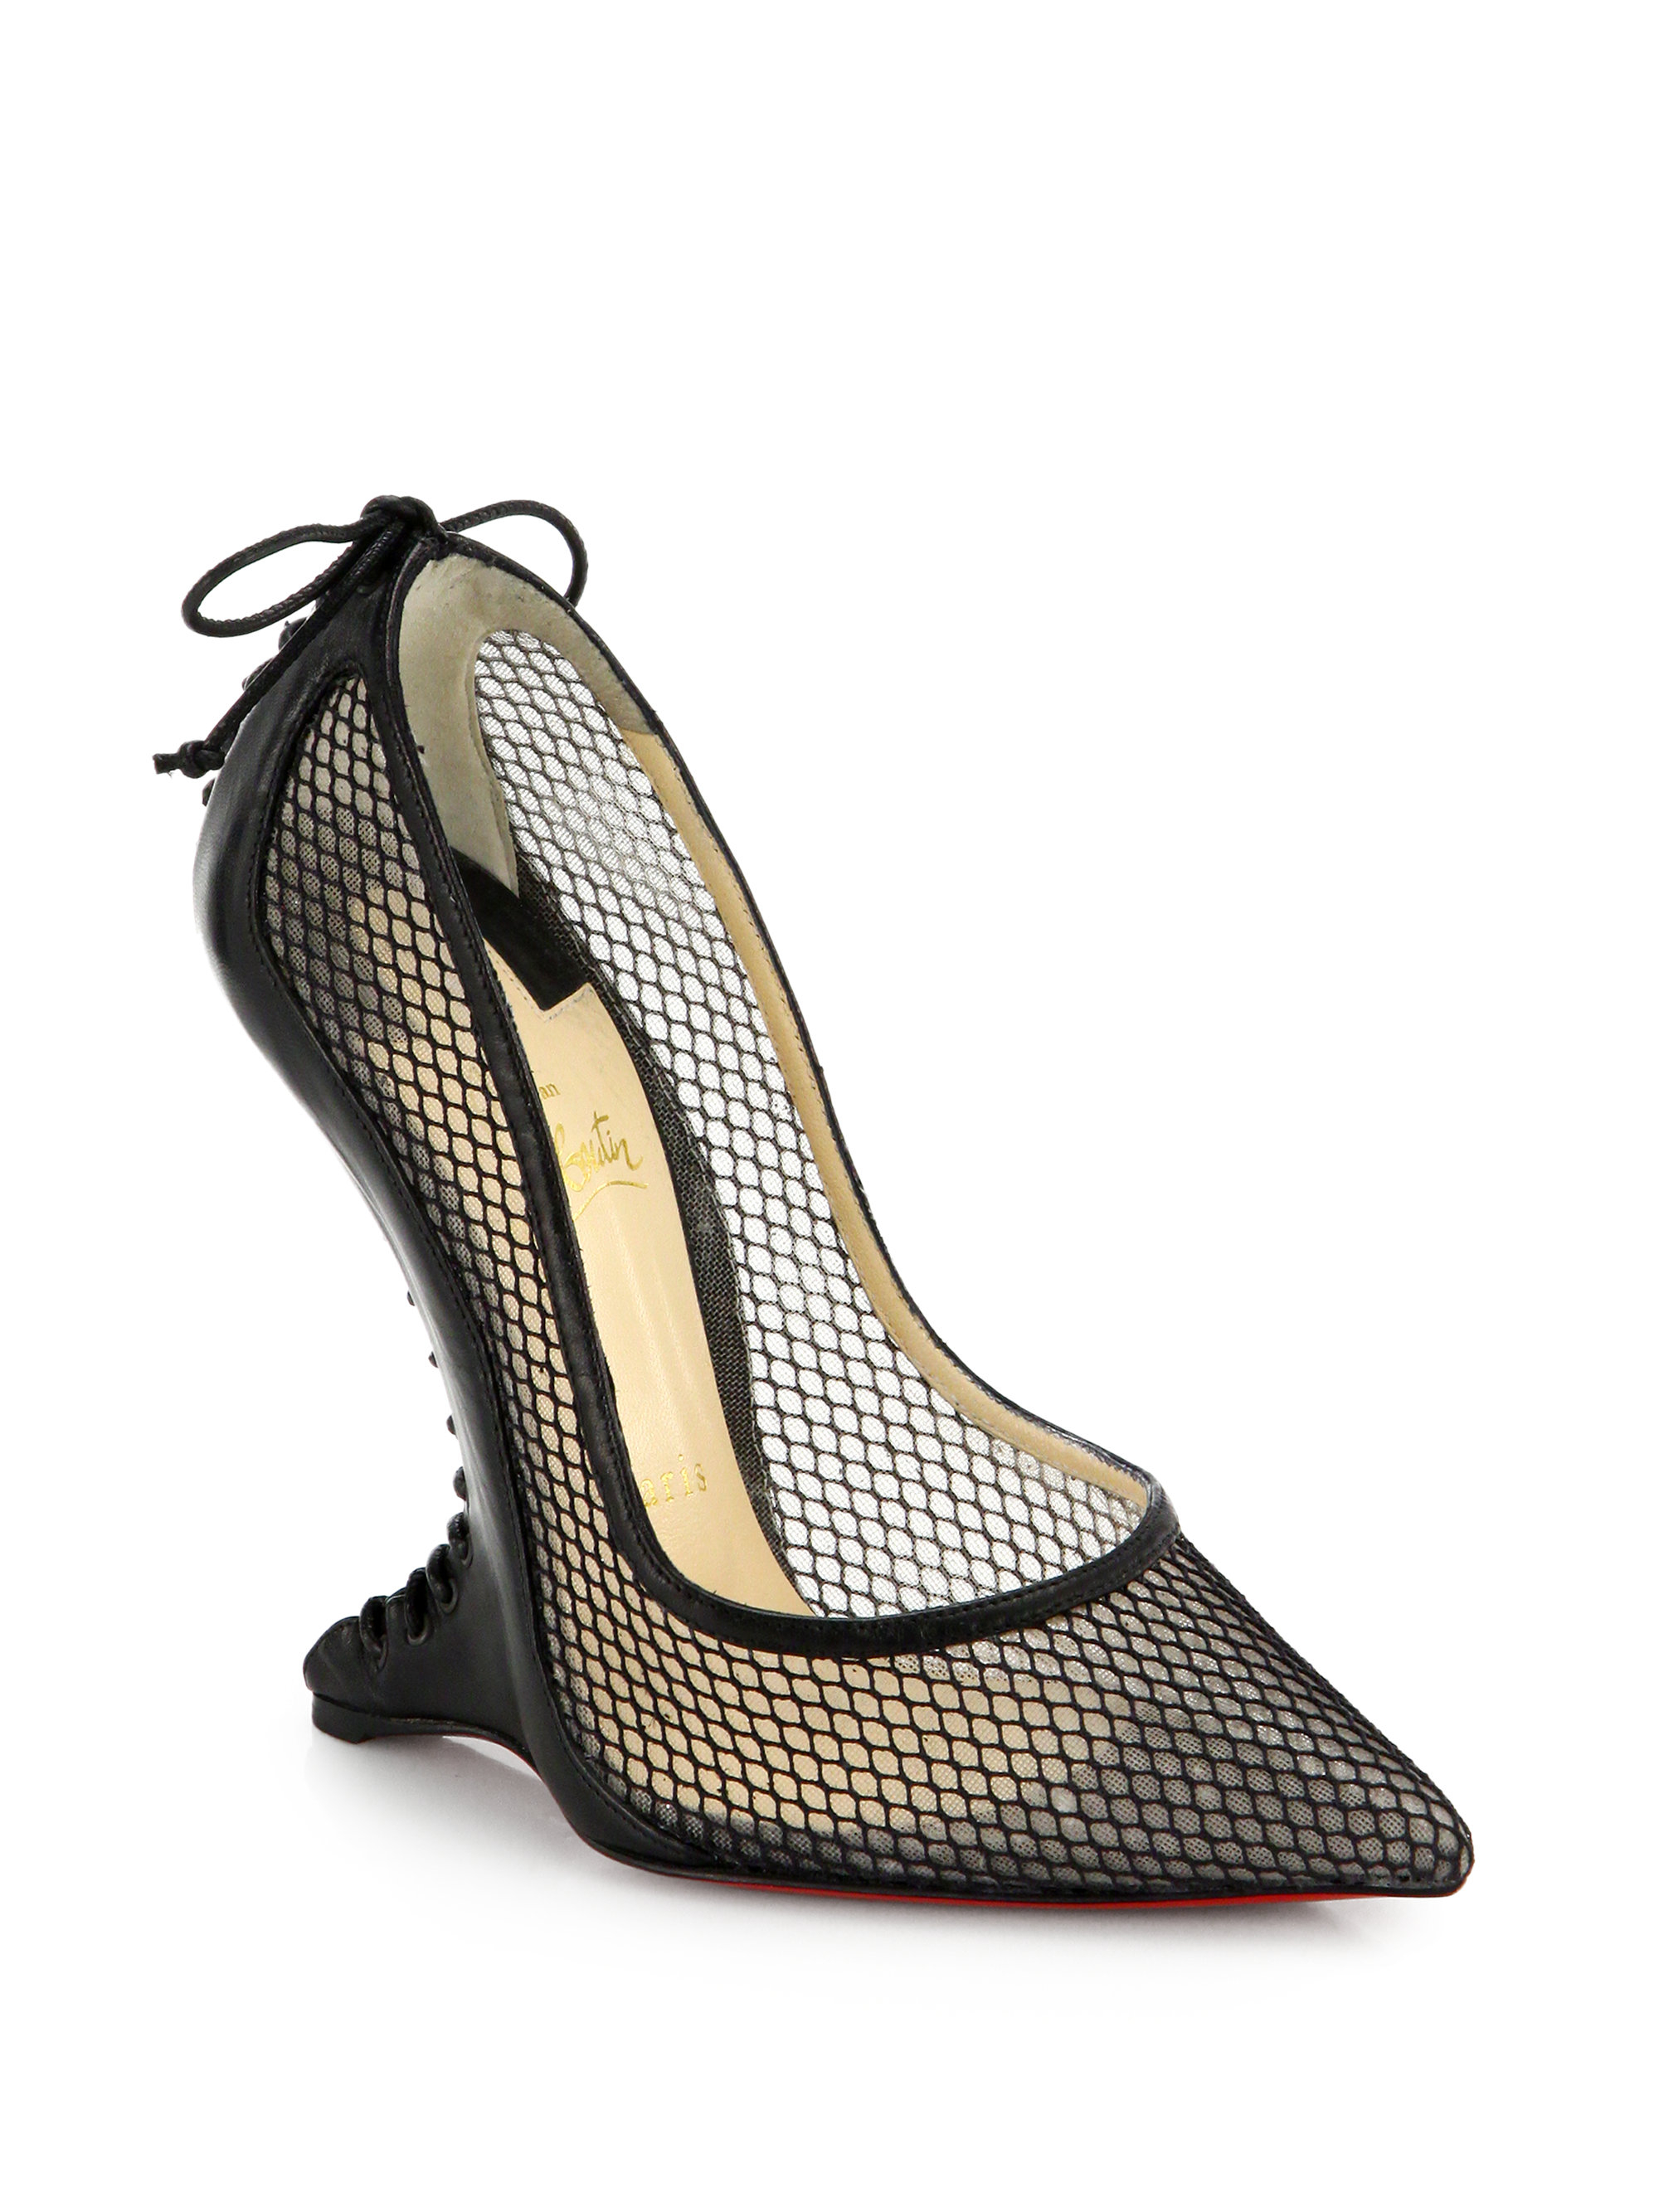 christian-louboutin-black-fishnet-leather-lace-back-wedge-pumps-product-1-21741600-2-603512154-normal.jpeg